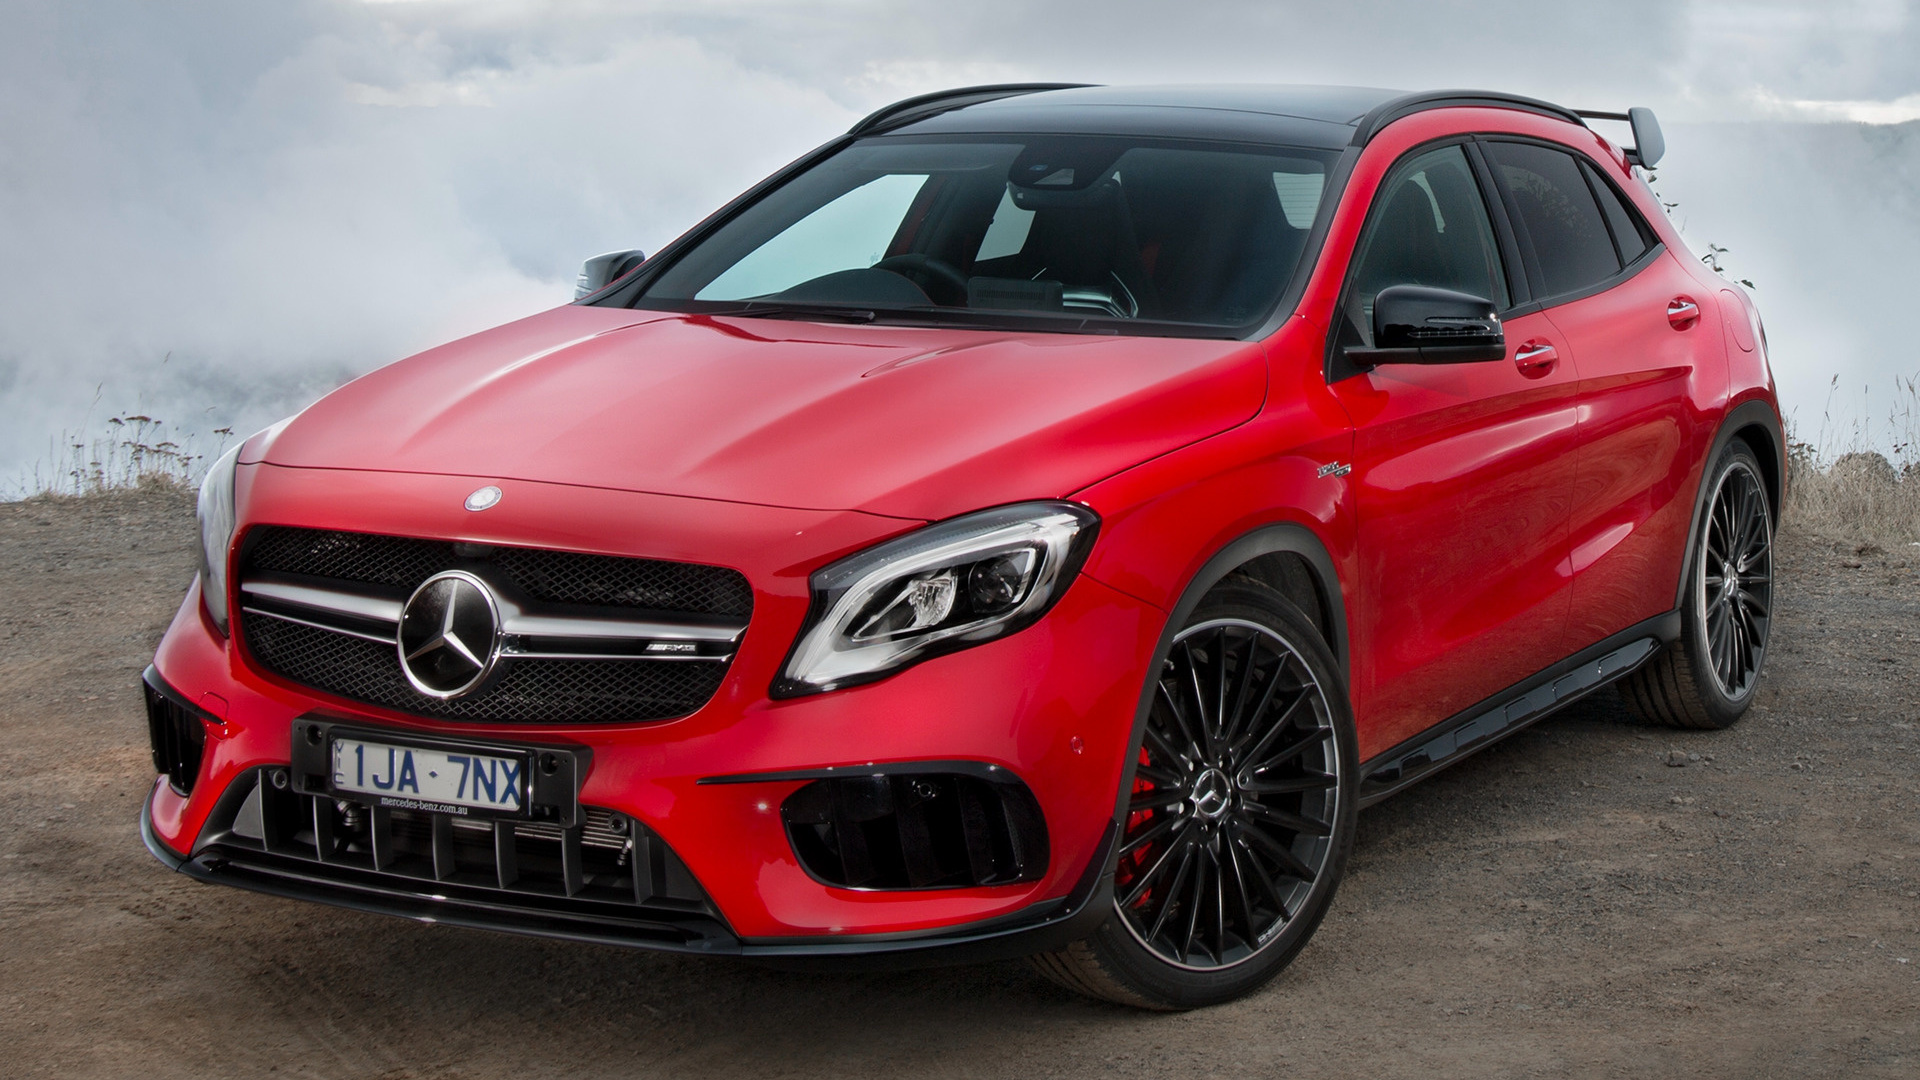 mercedes amg gla 45 aerodynamics package 2017 au wallpapers and hd images car pixel. Black Bedroom Furniture Sets. Home Design Ideas